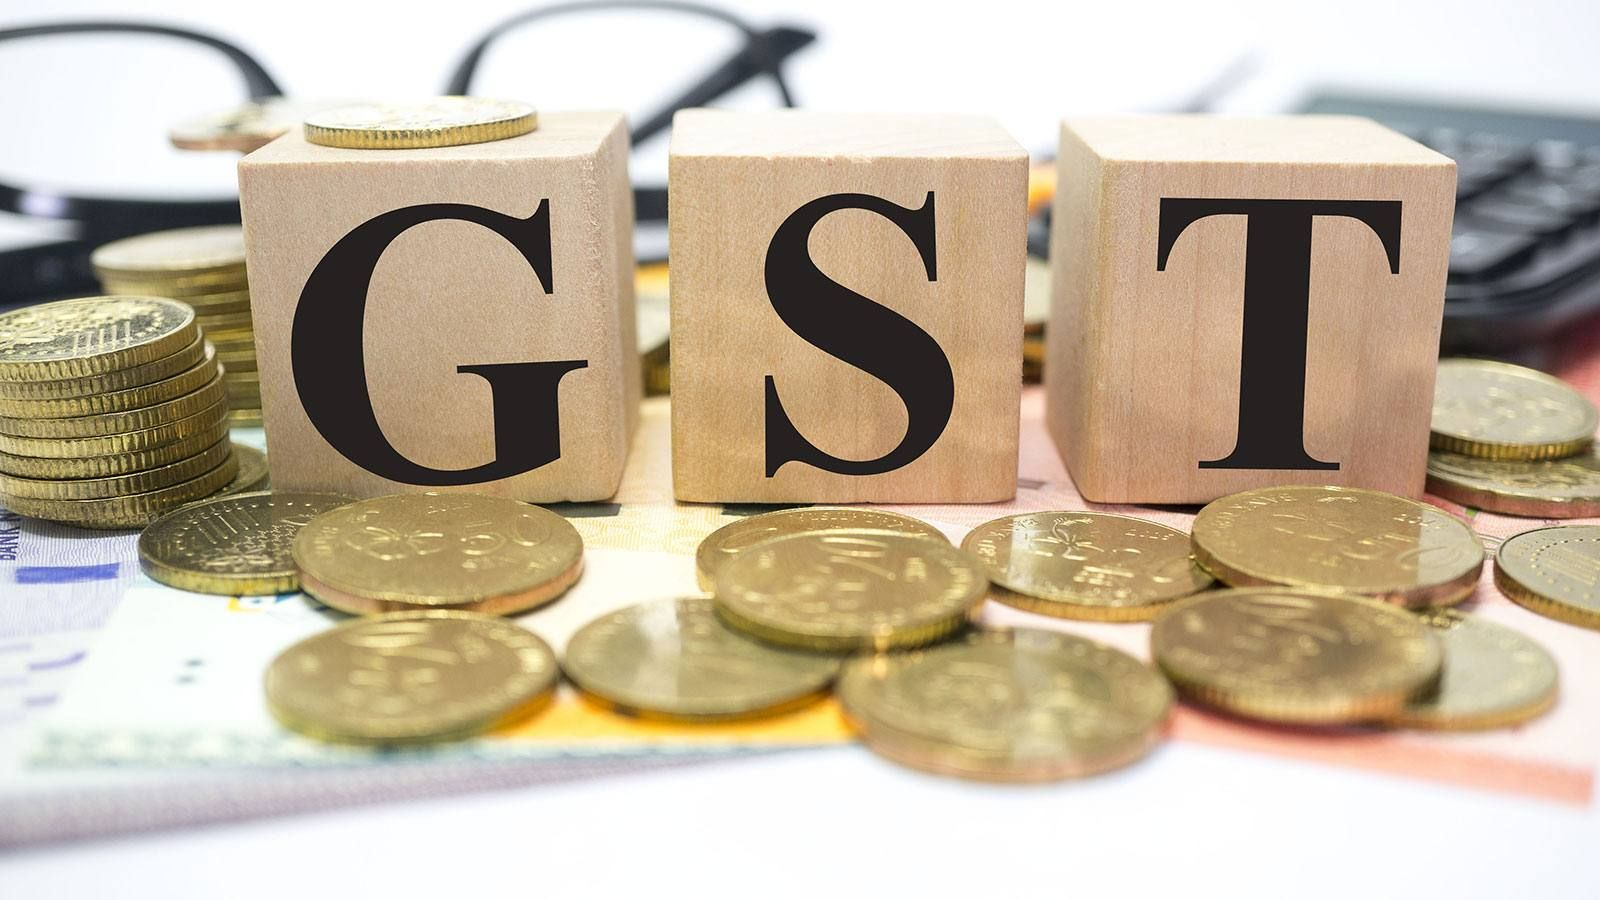 Good and Service Tax - GST Tax rates and Slabs in India 2017 - Product or Service wise GST in India 2017